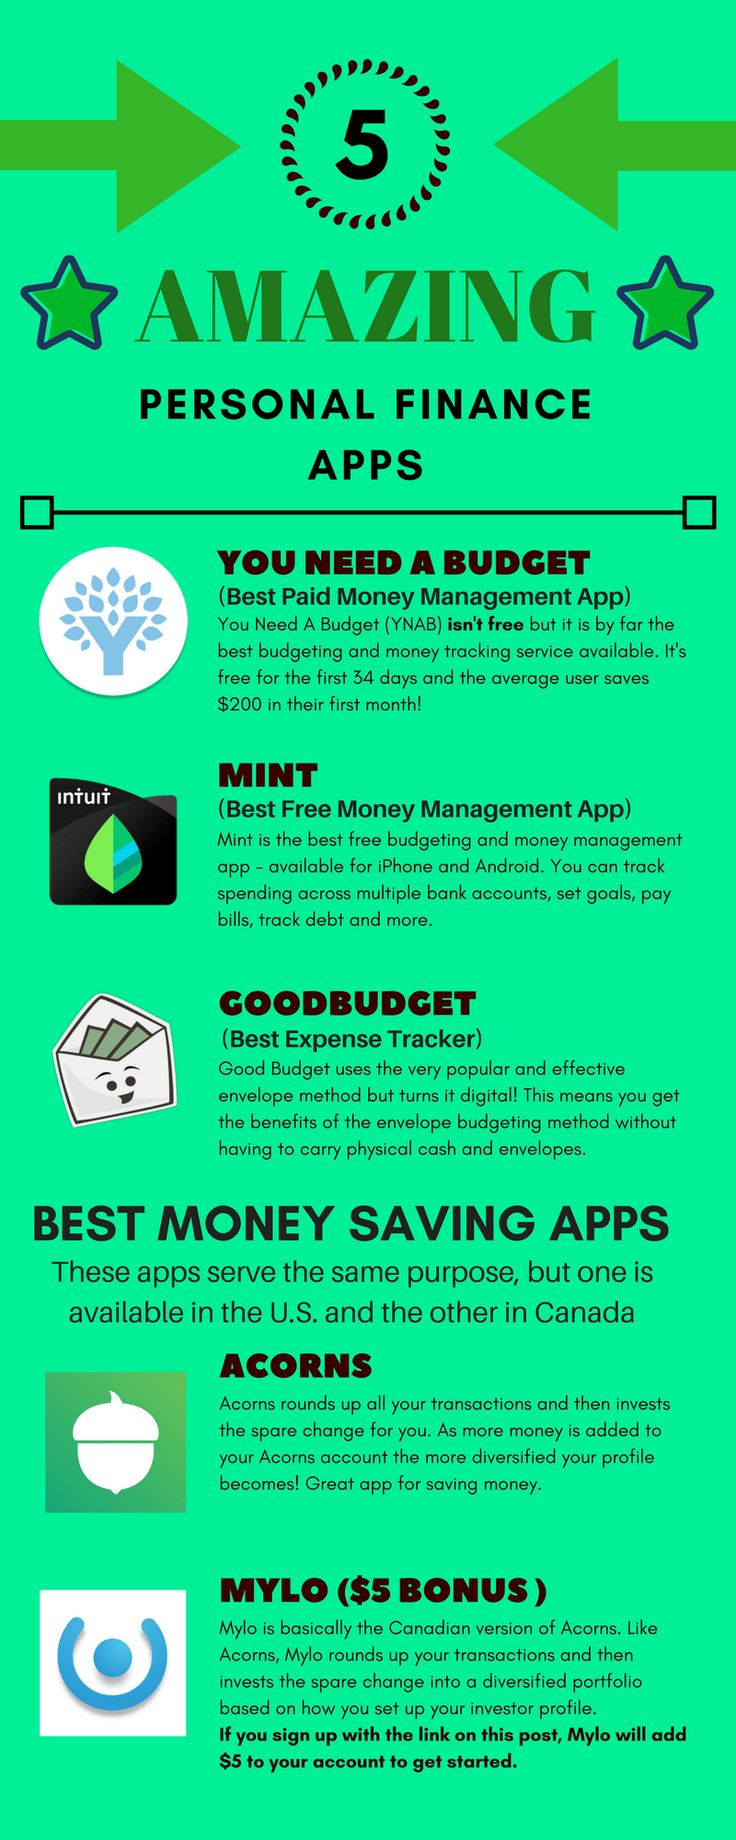 If you look around for the best personal finance apps, you're bound to run into a post listing so many apps that you just end up overwhelmed. But what if that wasn't how it had to be? These 5 personal finance apps are all quite different and easy to get started with. #personalfinance #finances #savemoney #budgeting #budget #runningapps